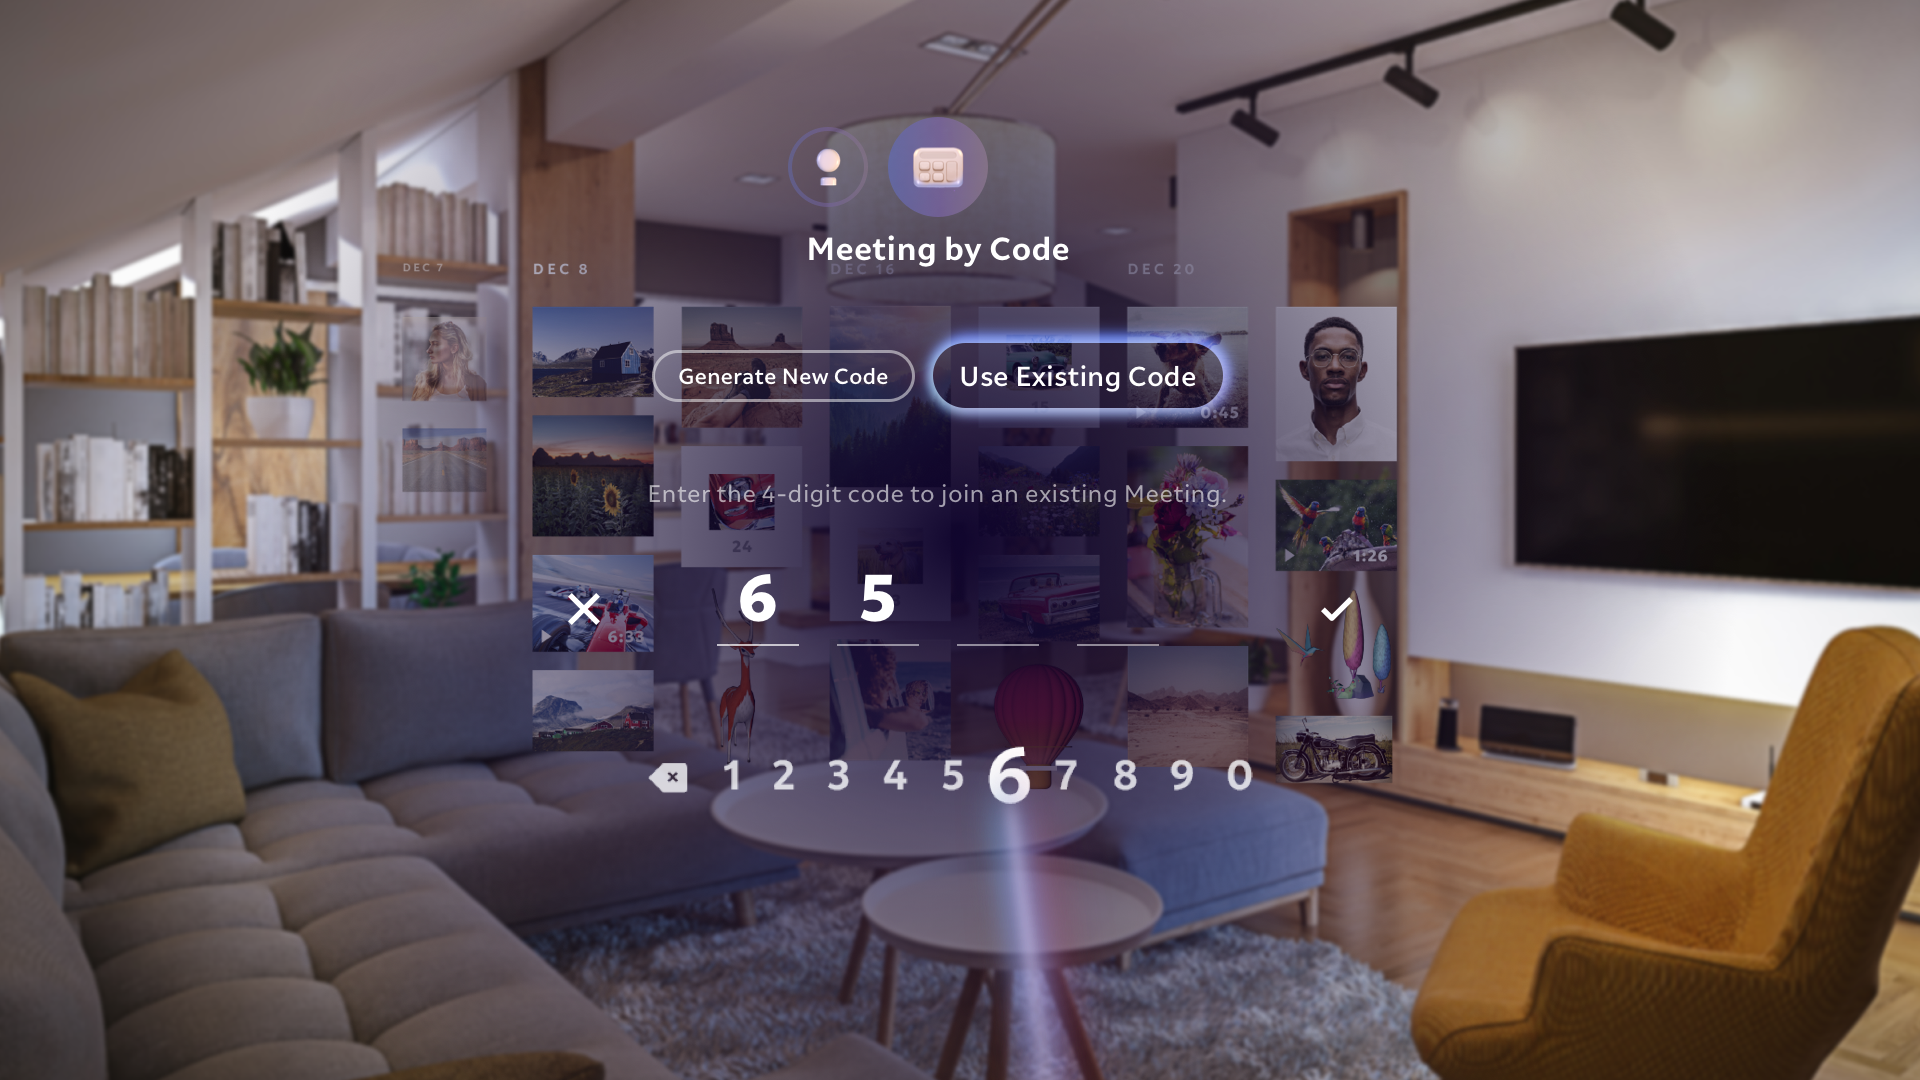 Meetings - Use Existing Code